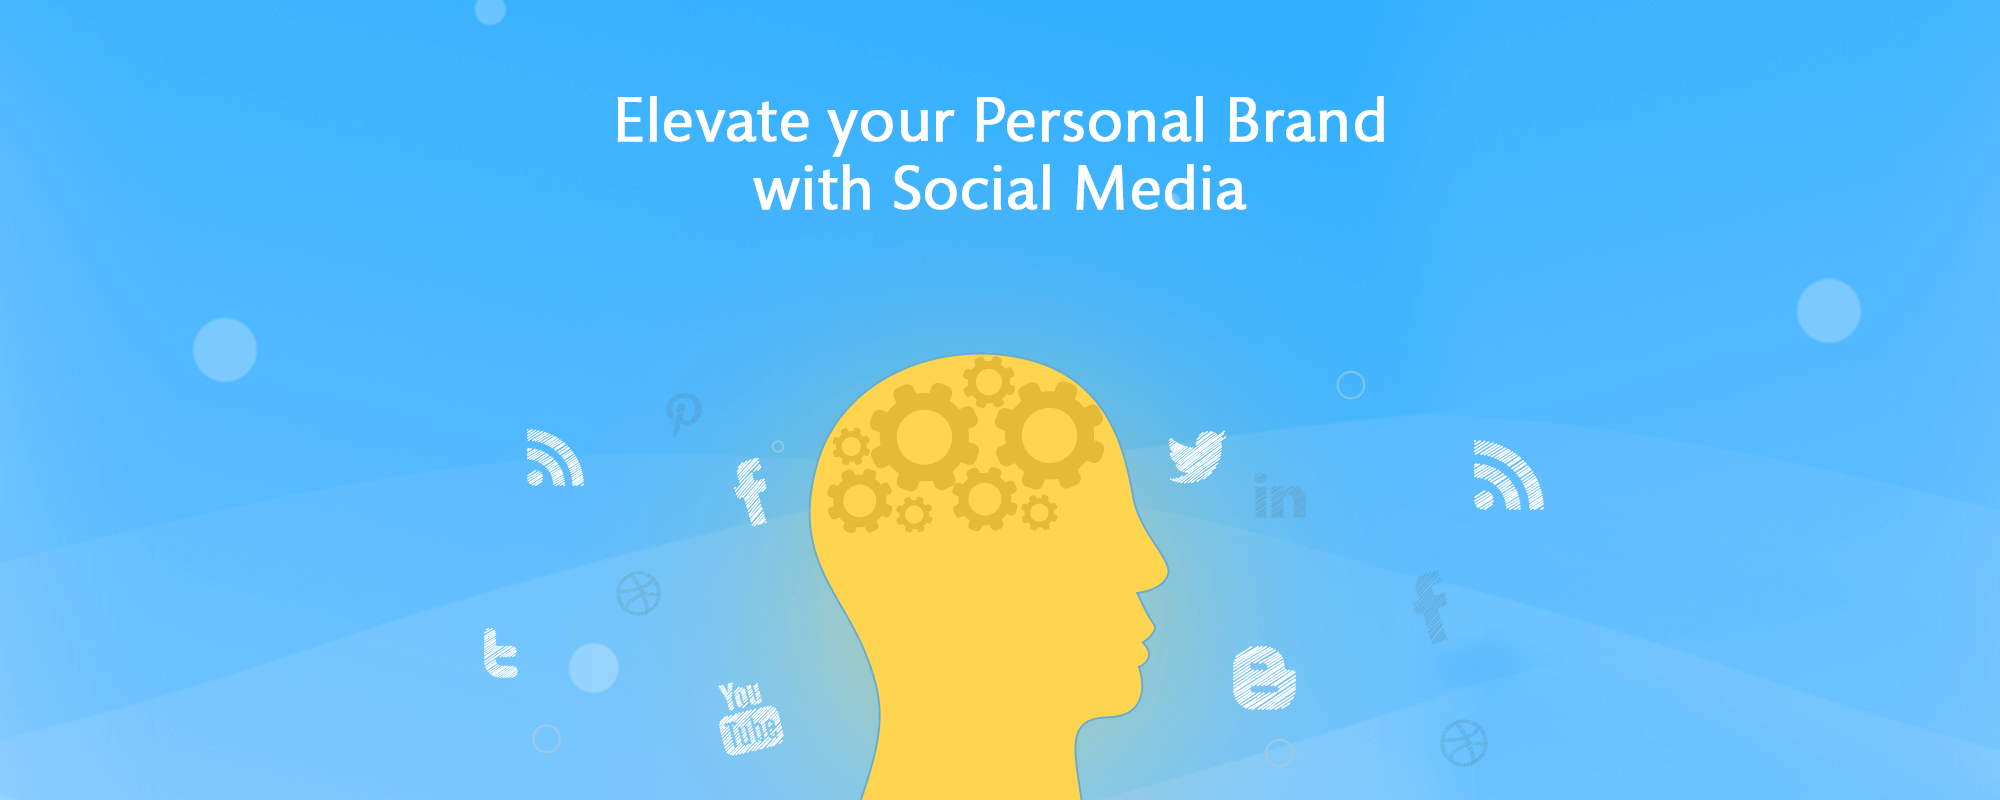 3 Social Growth Hacks For Personal Branding